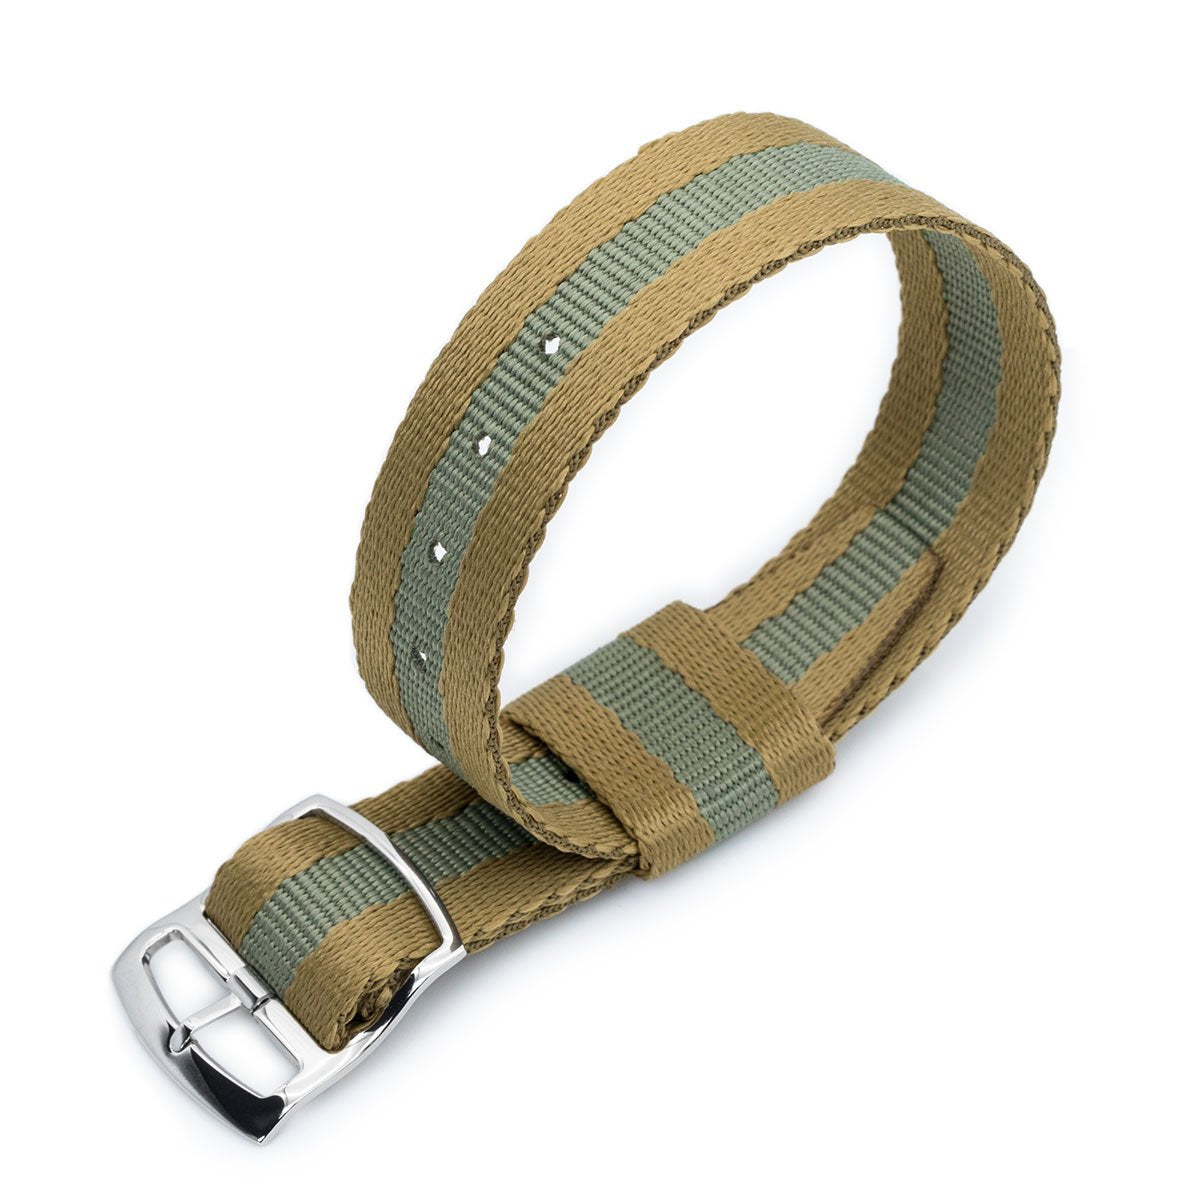 20mm MiLTAT RAF N7 Nato Watch Strap Sand and Military Green Polished Ladder Lock Slider Buckle Strapcode Watch Bands